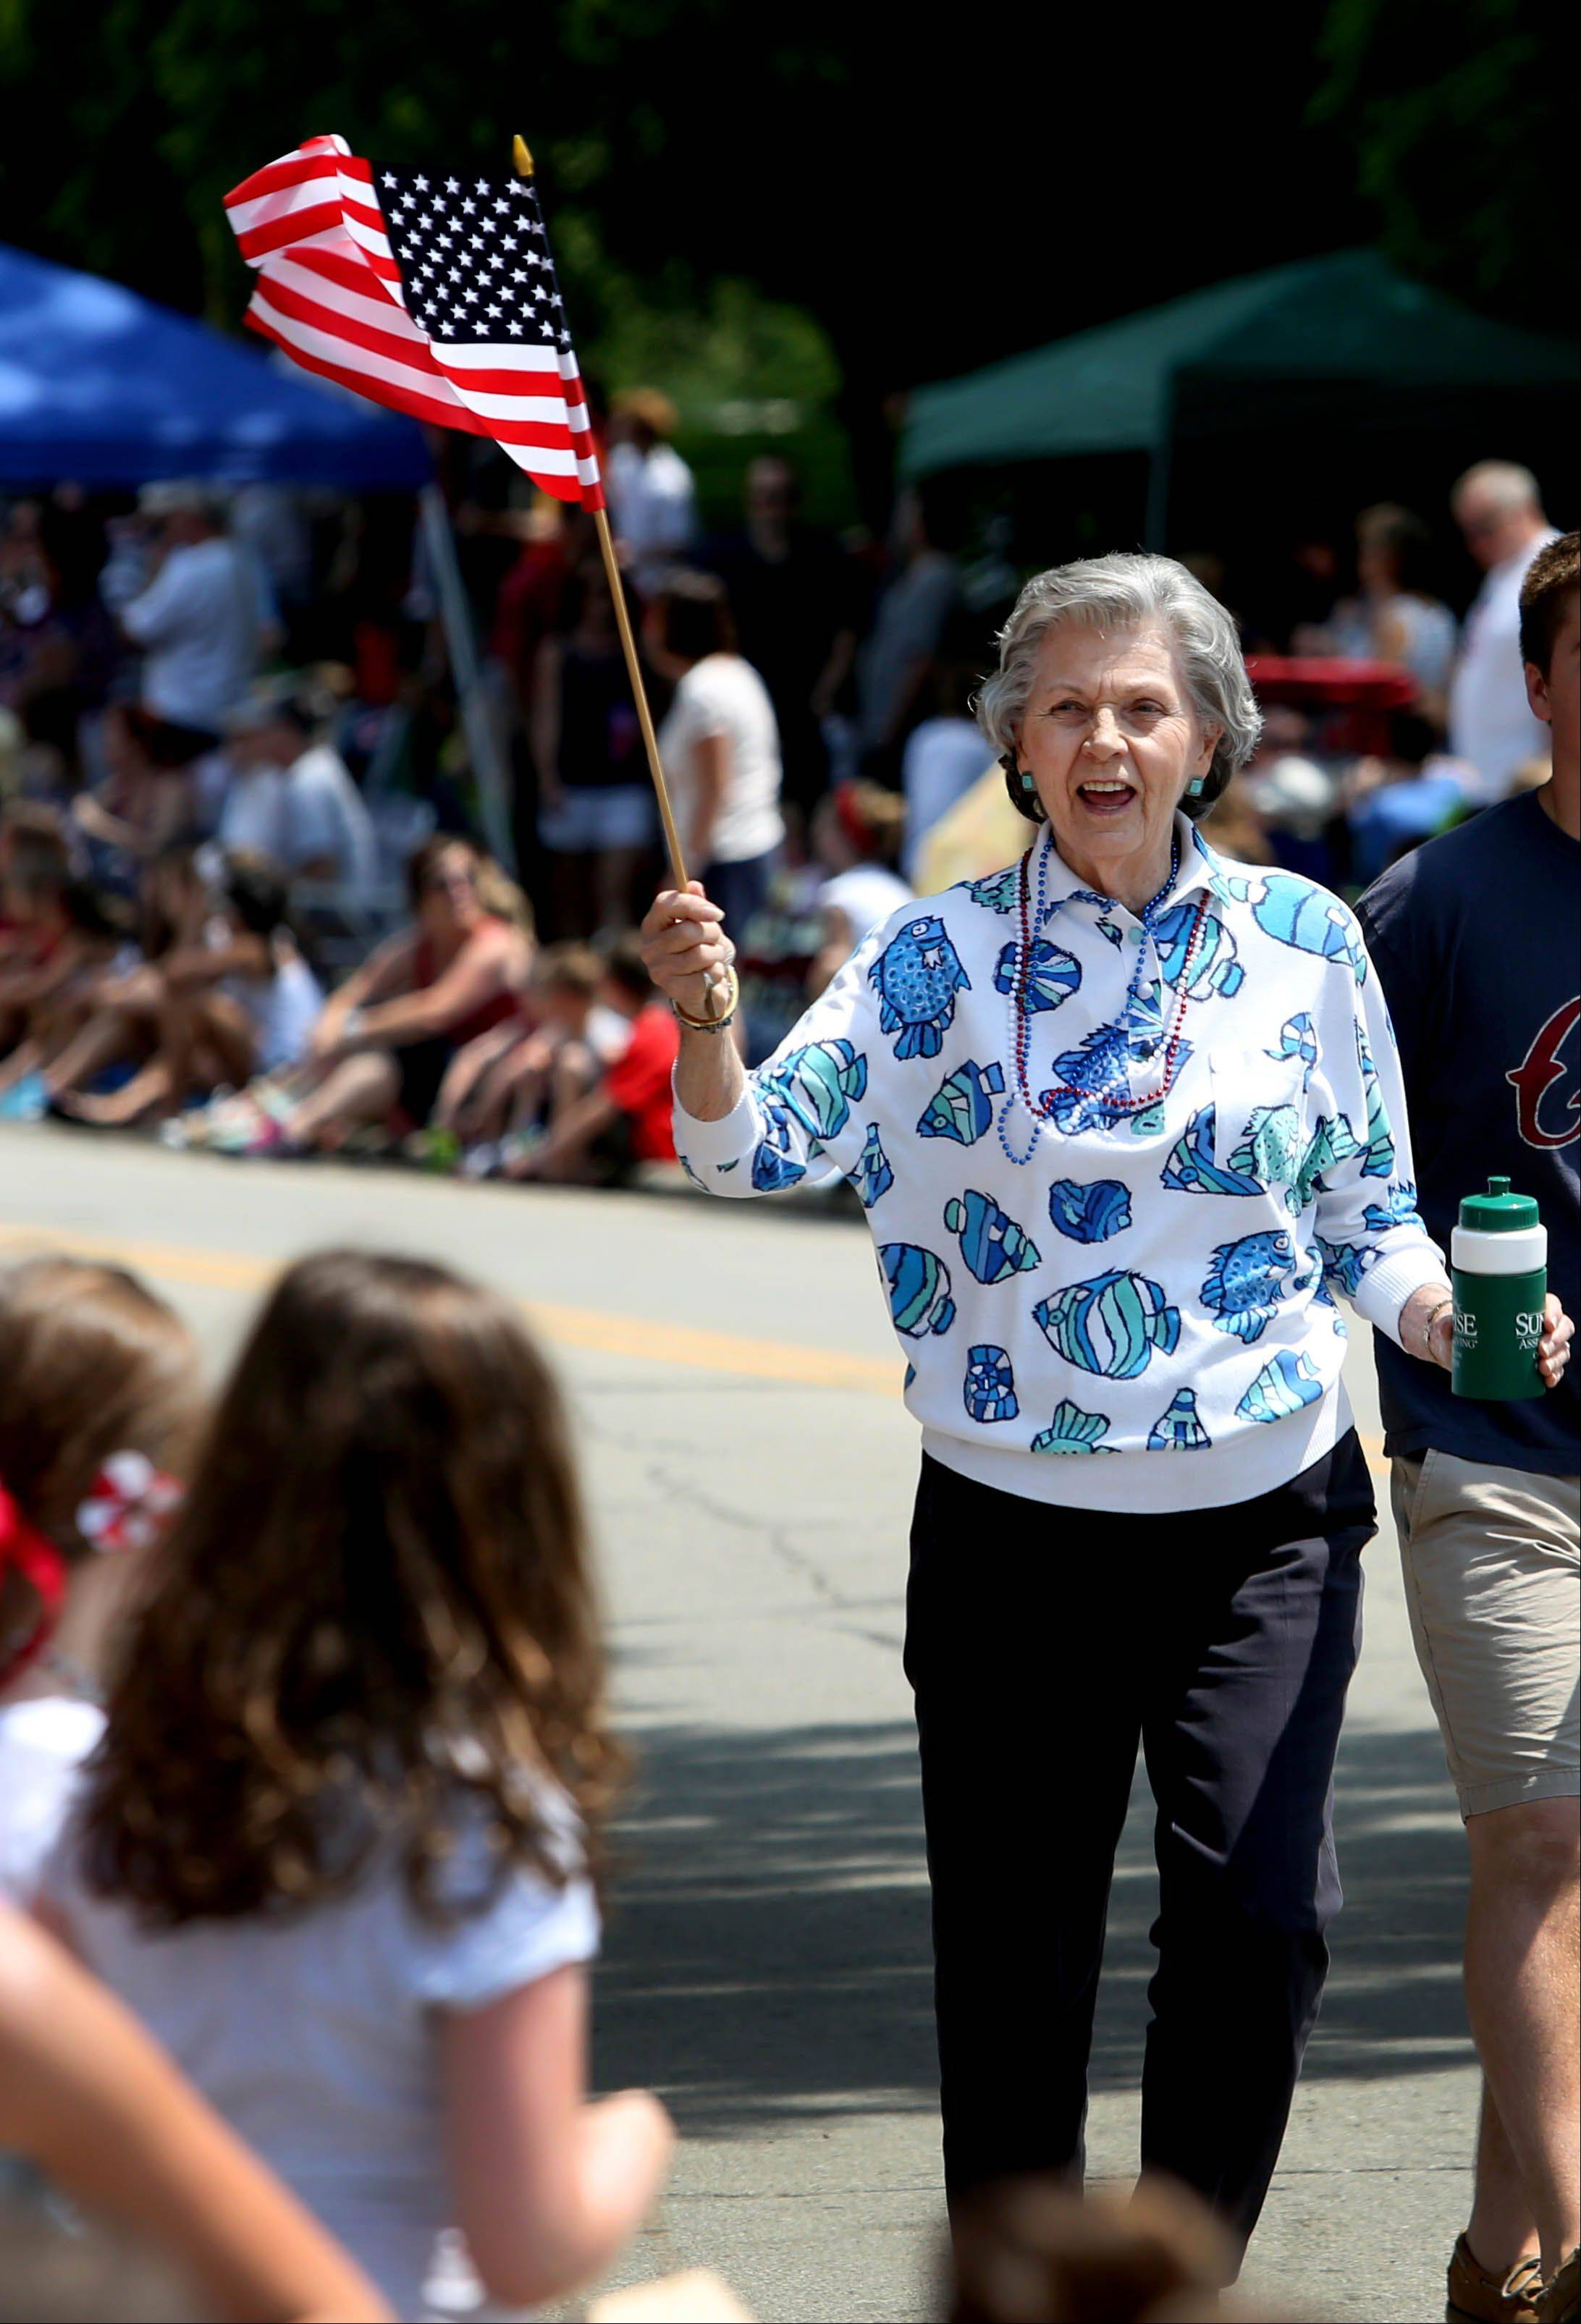 June Franks from Sunrise Senior Living center in Glen Ellyn, waves the flag and hands out water bottles as she takes part in the 4th of July parade in Glen Ellyn on Thursday.